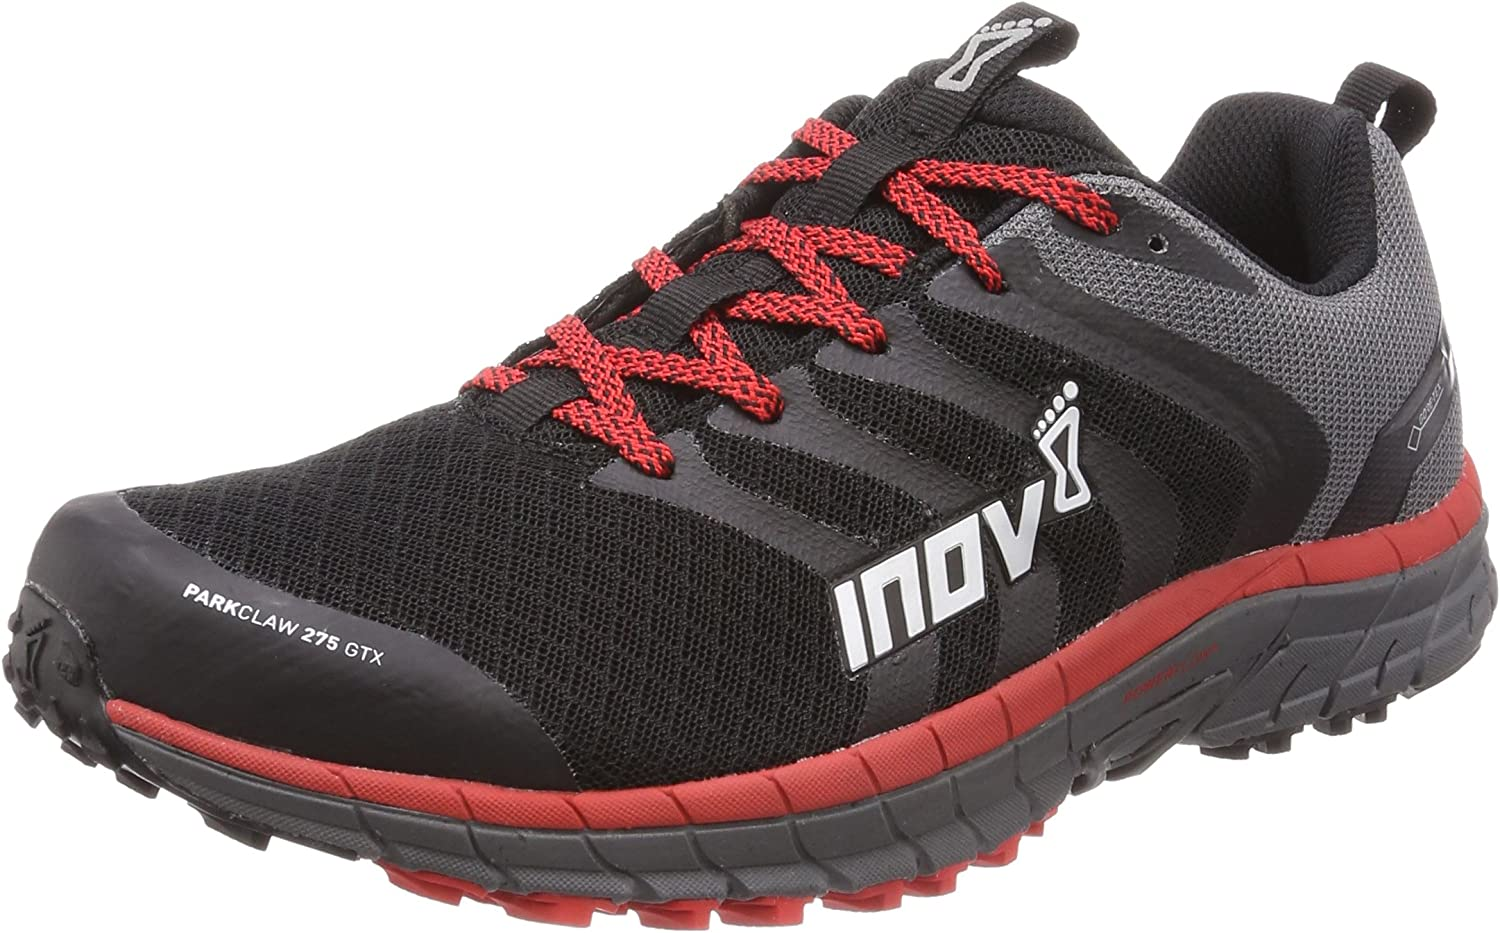 Inov8 Park Claw 275 Gore-Tex Running shoes